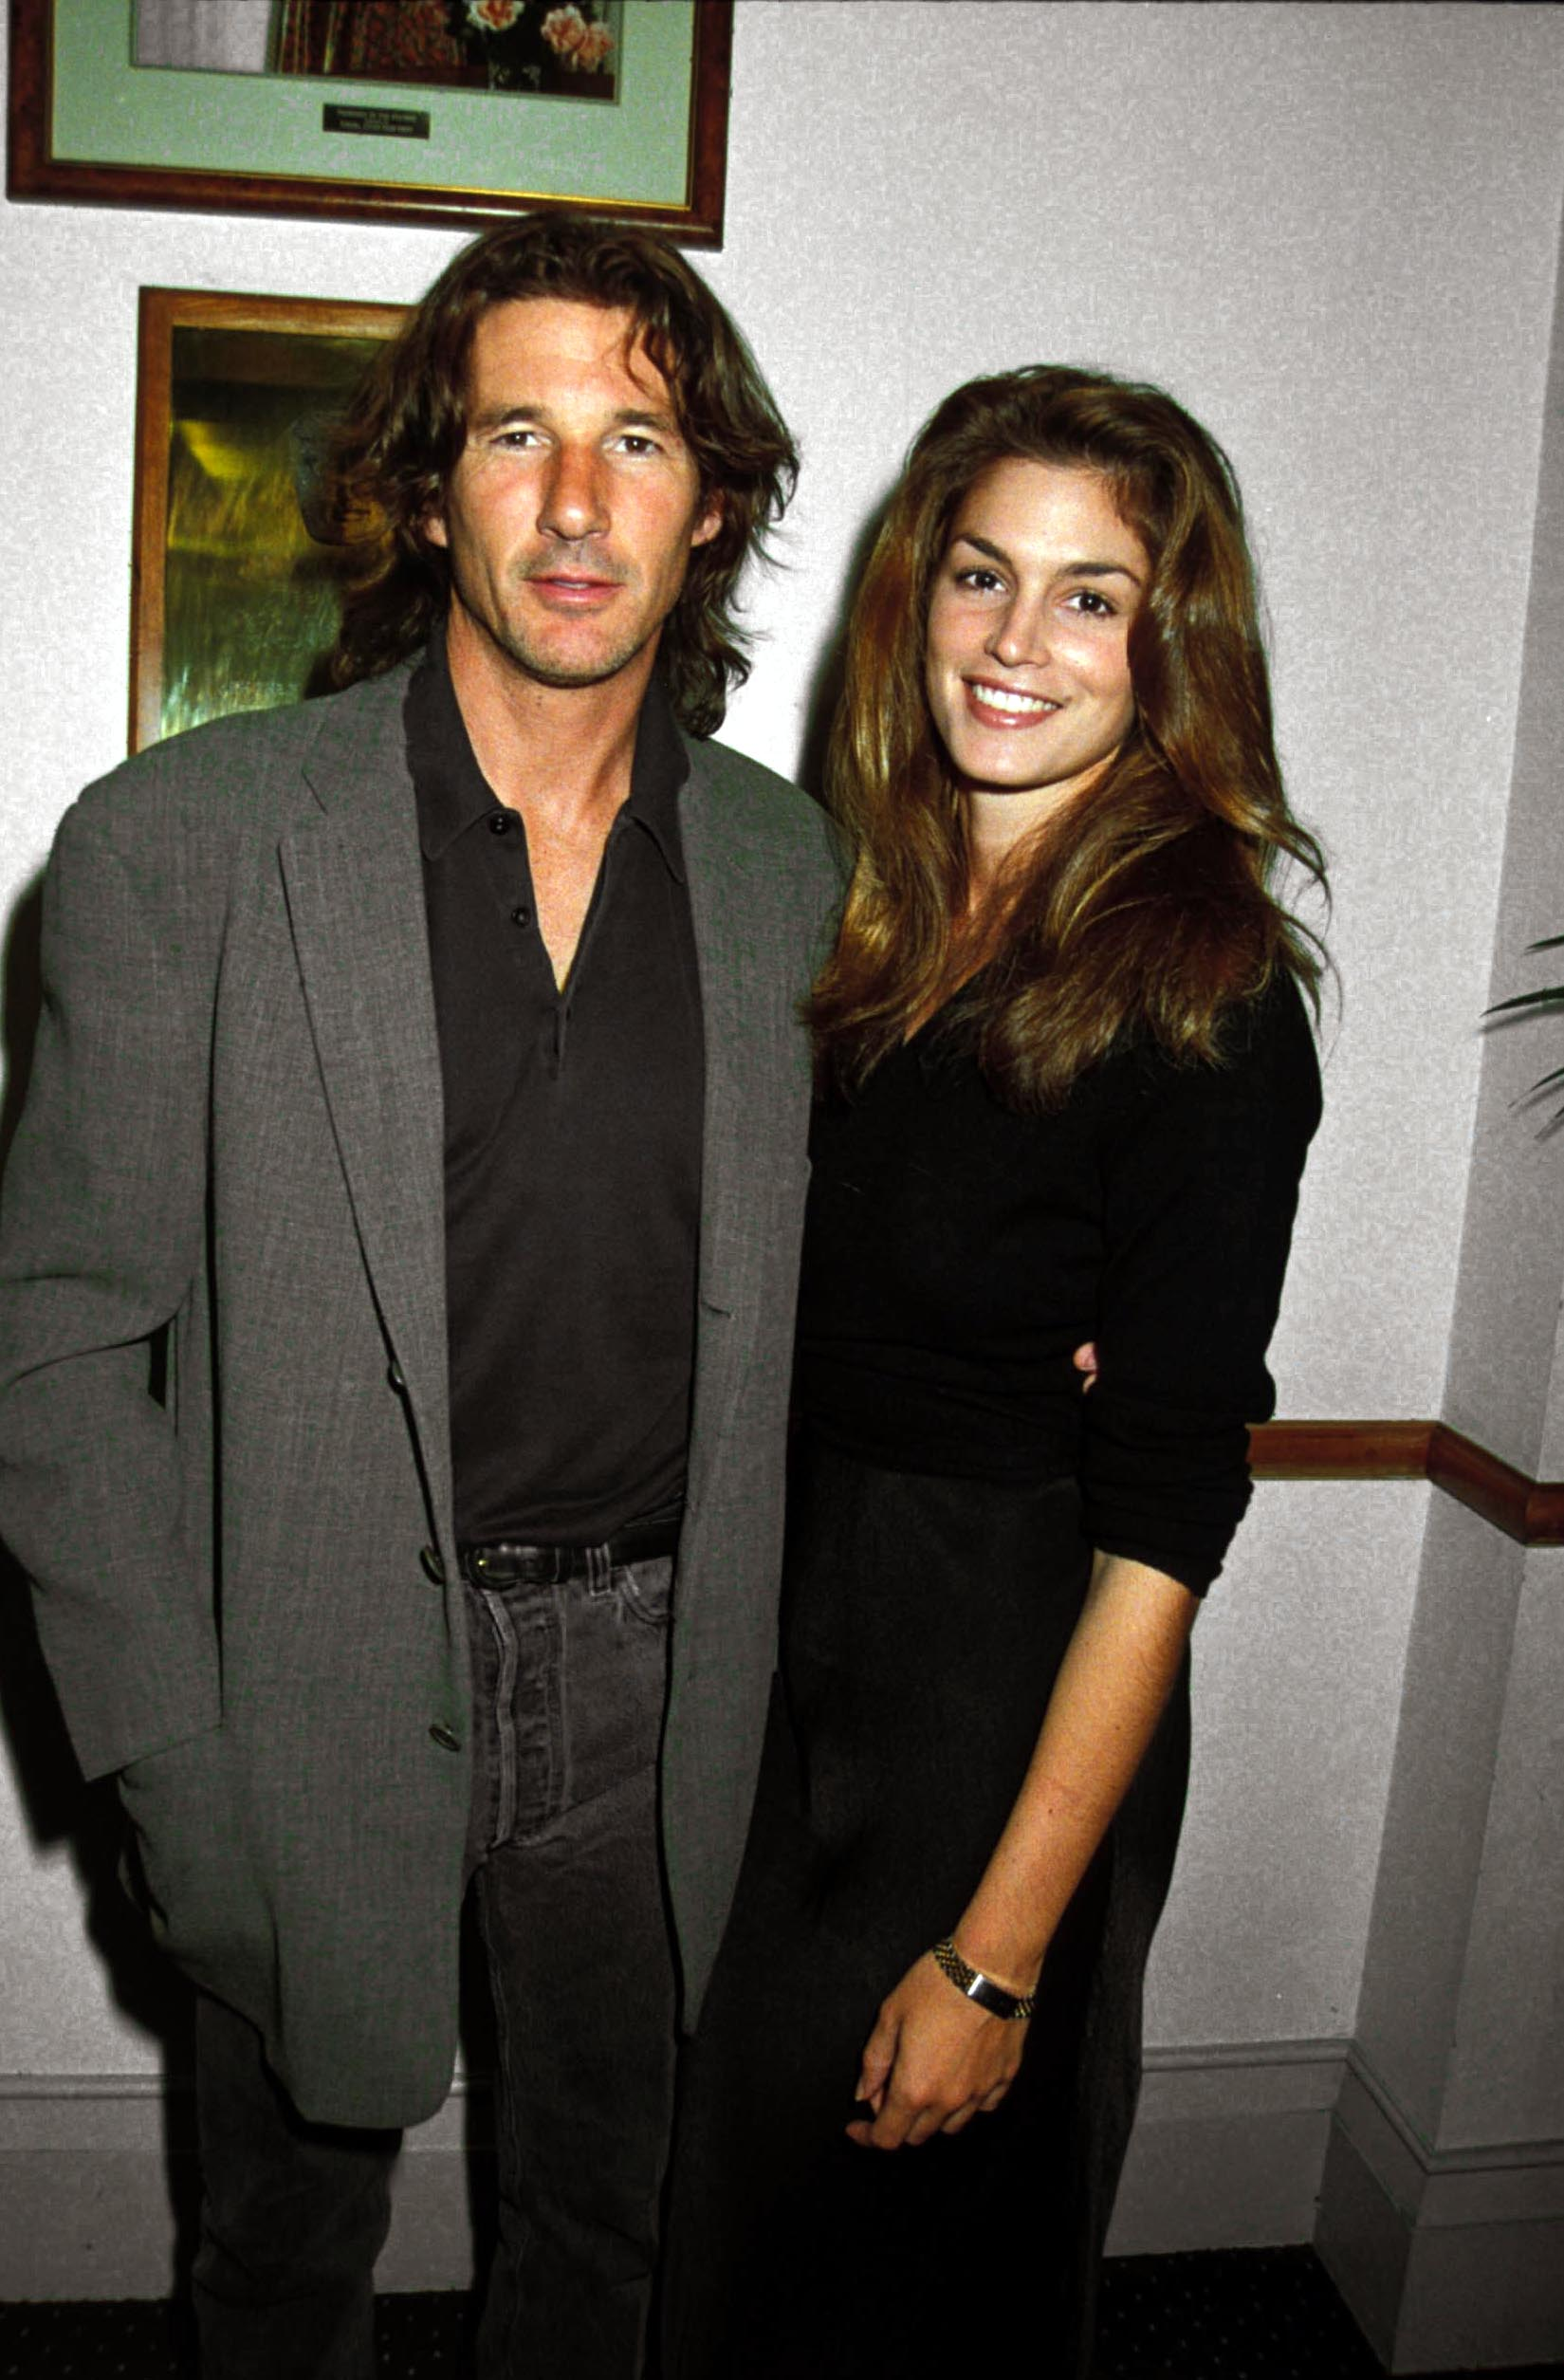 Cindy Crawford And Richard Gere Ant Mr Jones Premiere, Circa 1991 | Photo: GettyImages